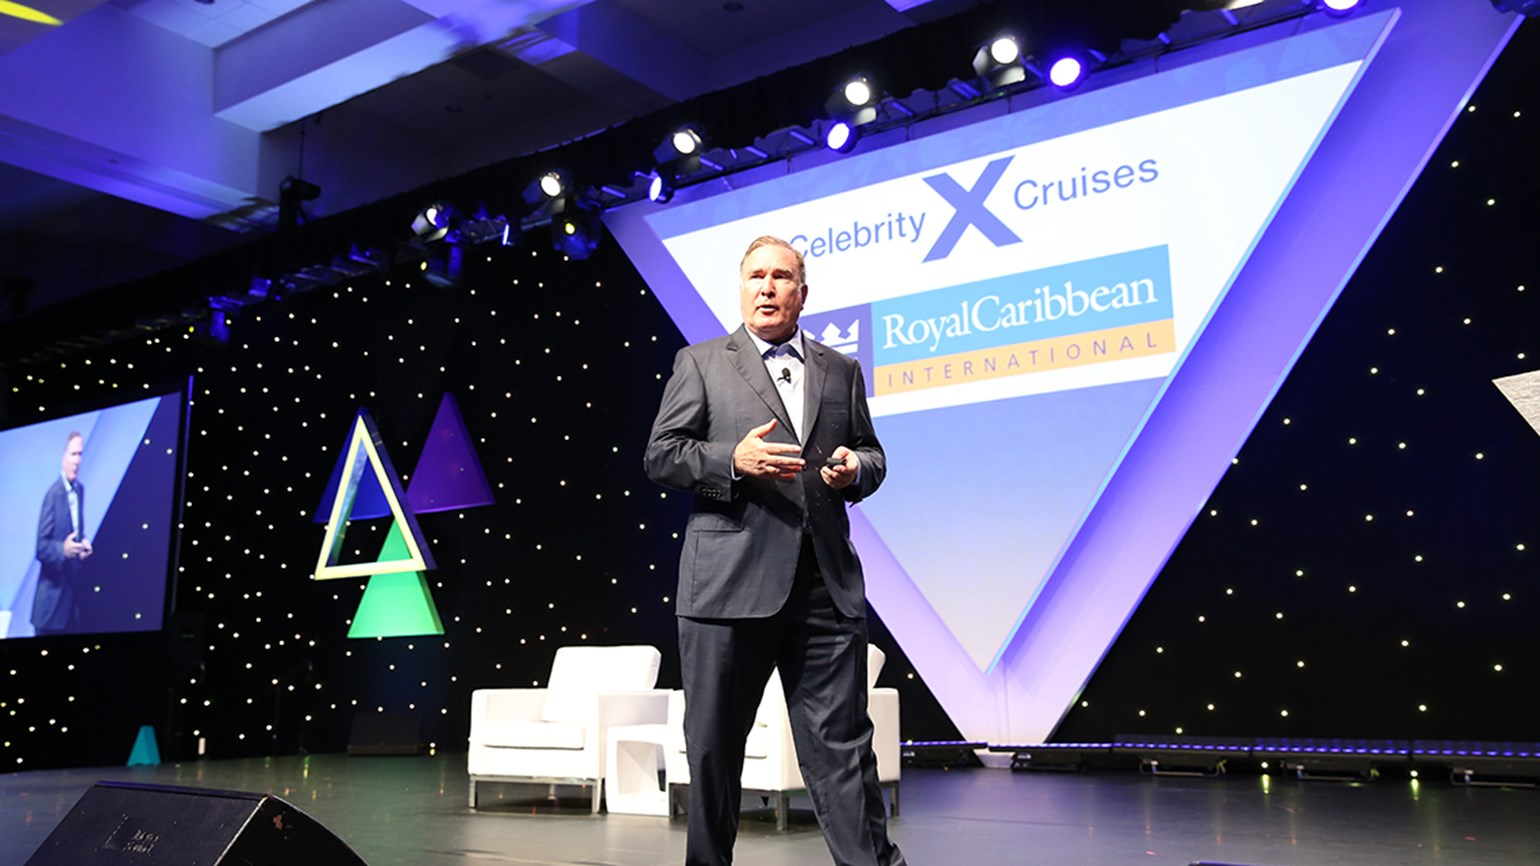 Personalize your vacation? Richard Fain says cruising will deliver